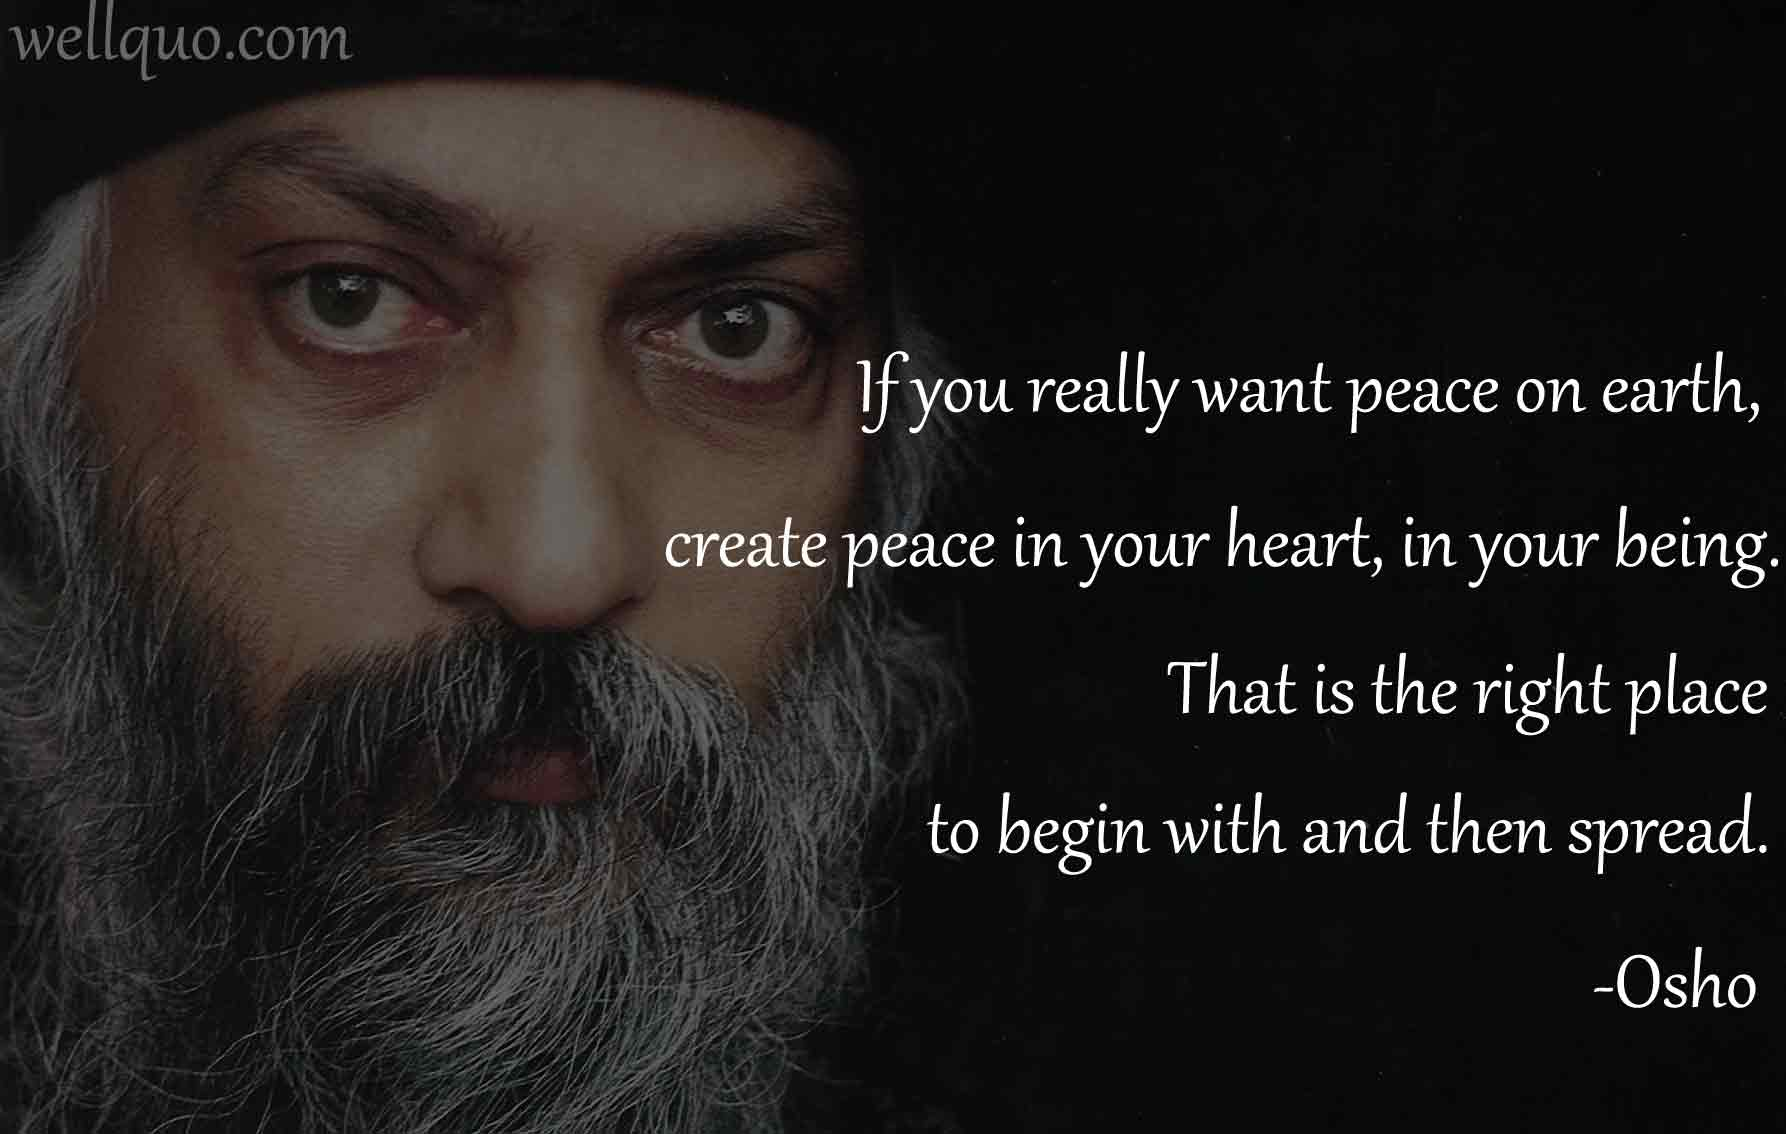 Osho Quotes on Life & Love - Wellquo.com